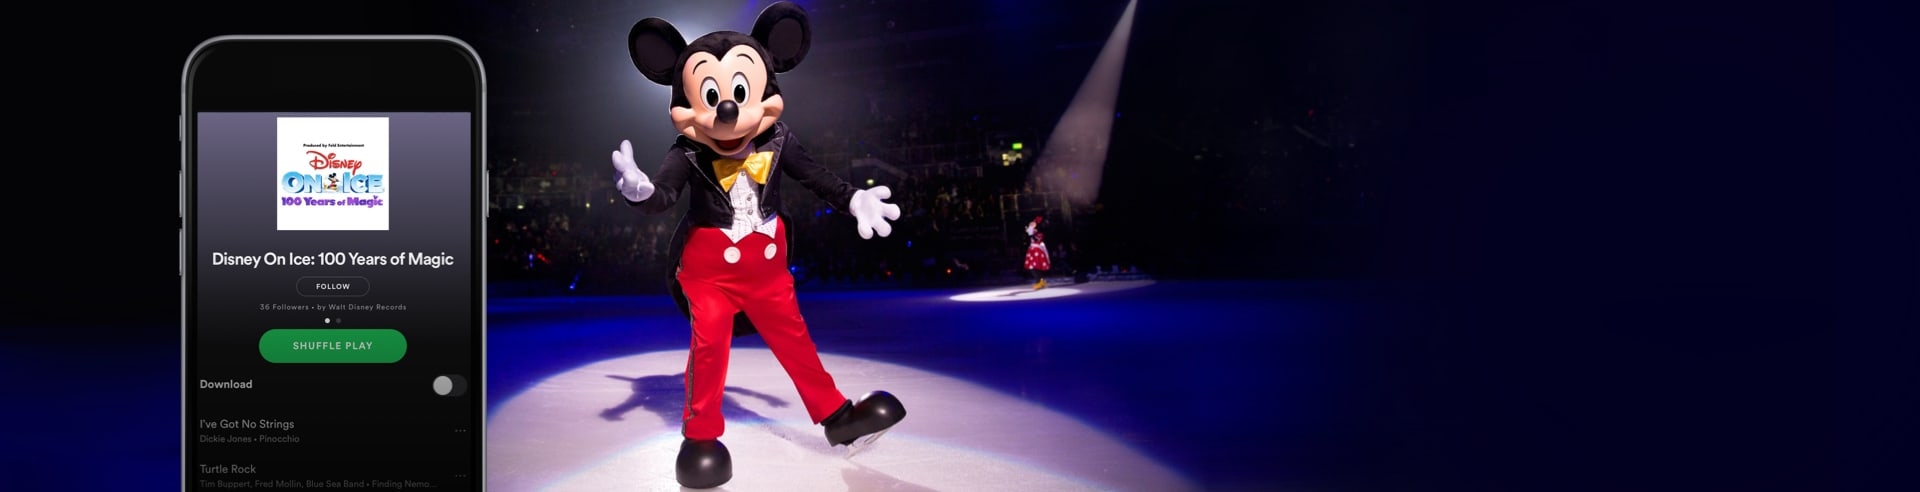 Listen now on Spotify to the Disney On Ice: 100 Years of Magic Playlist